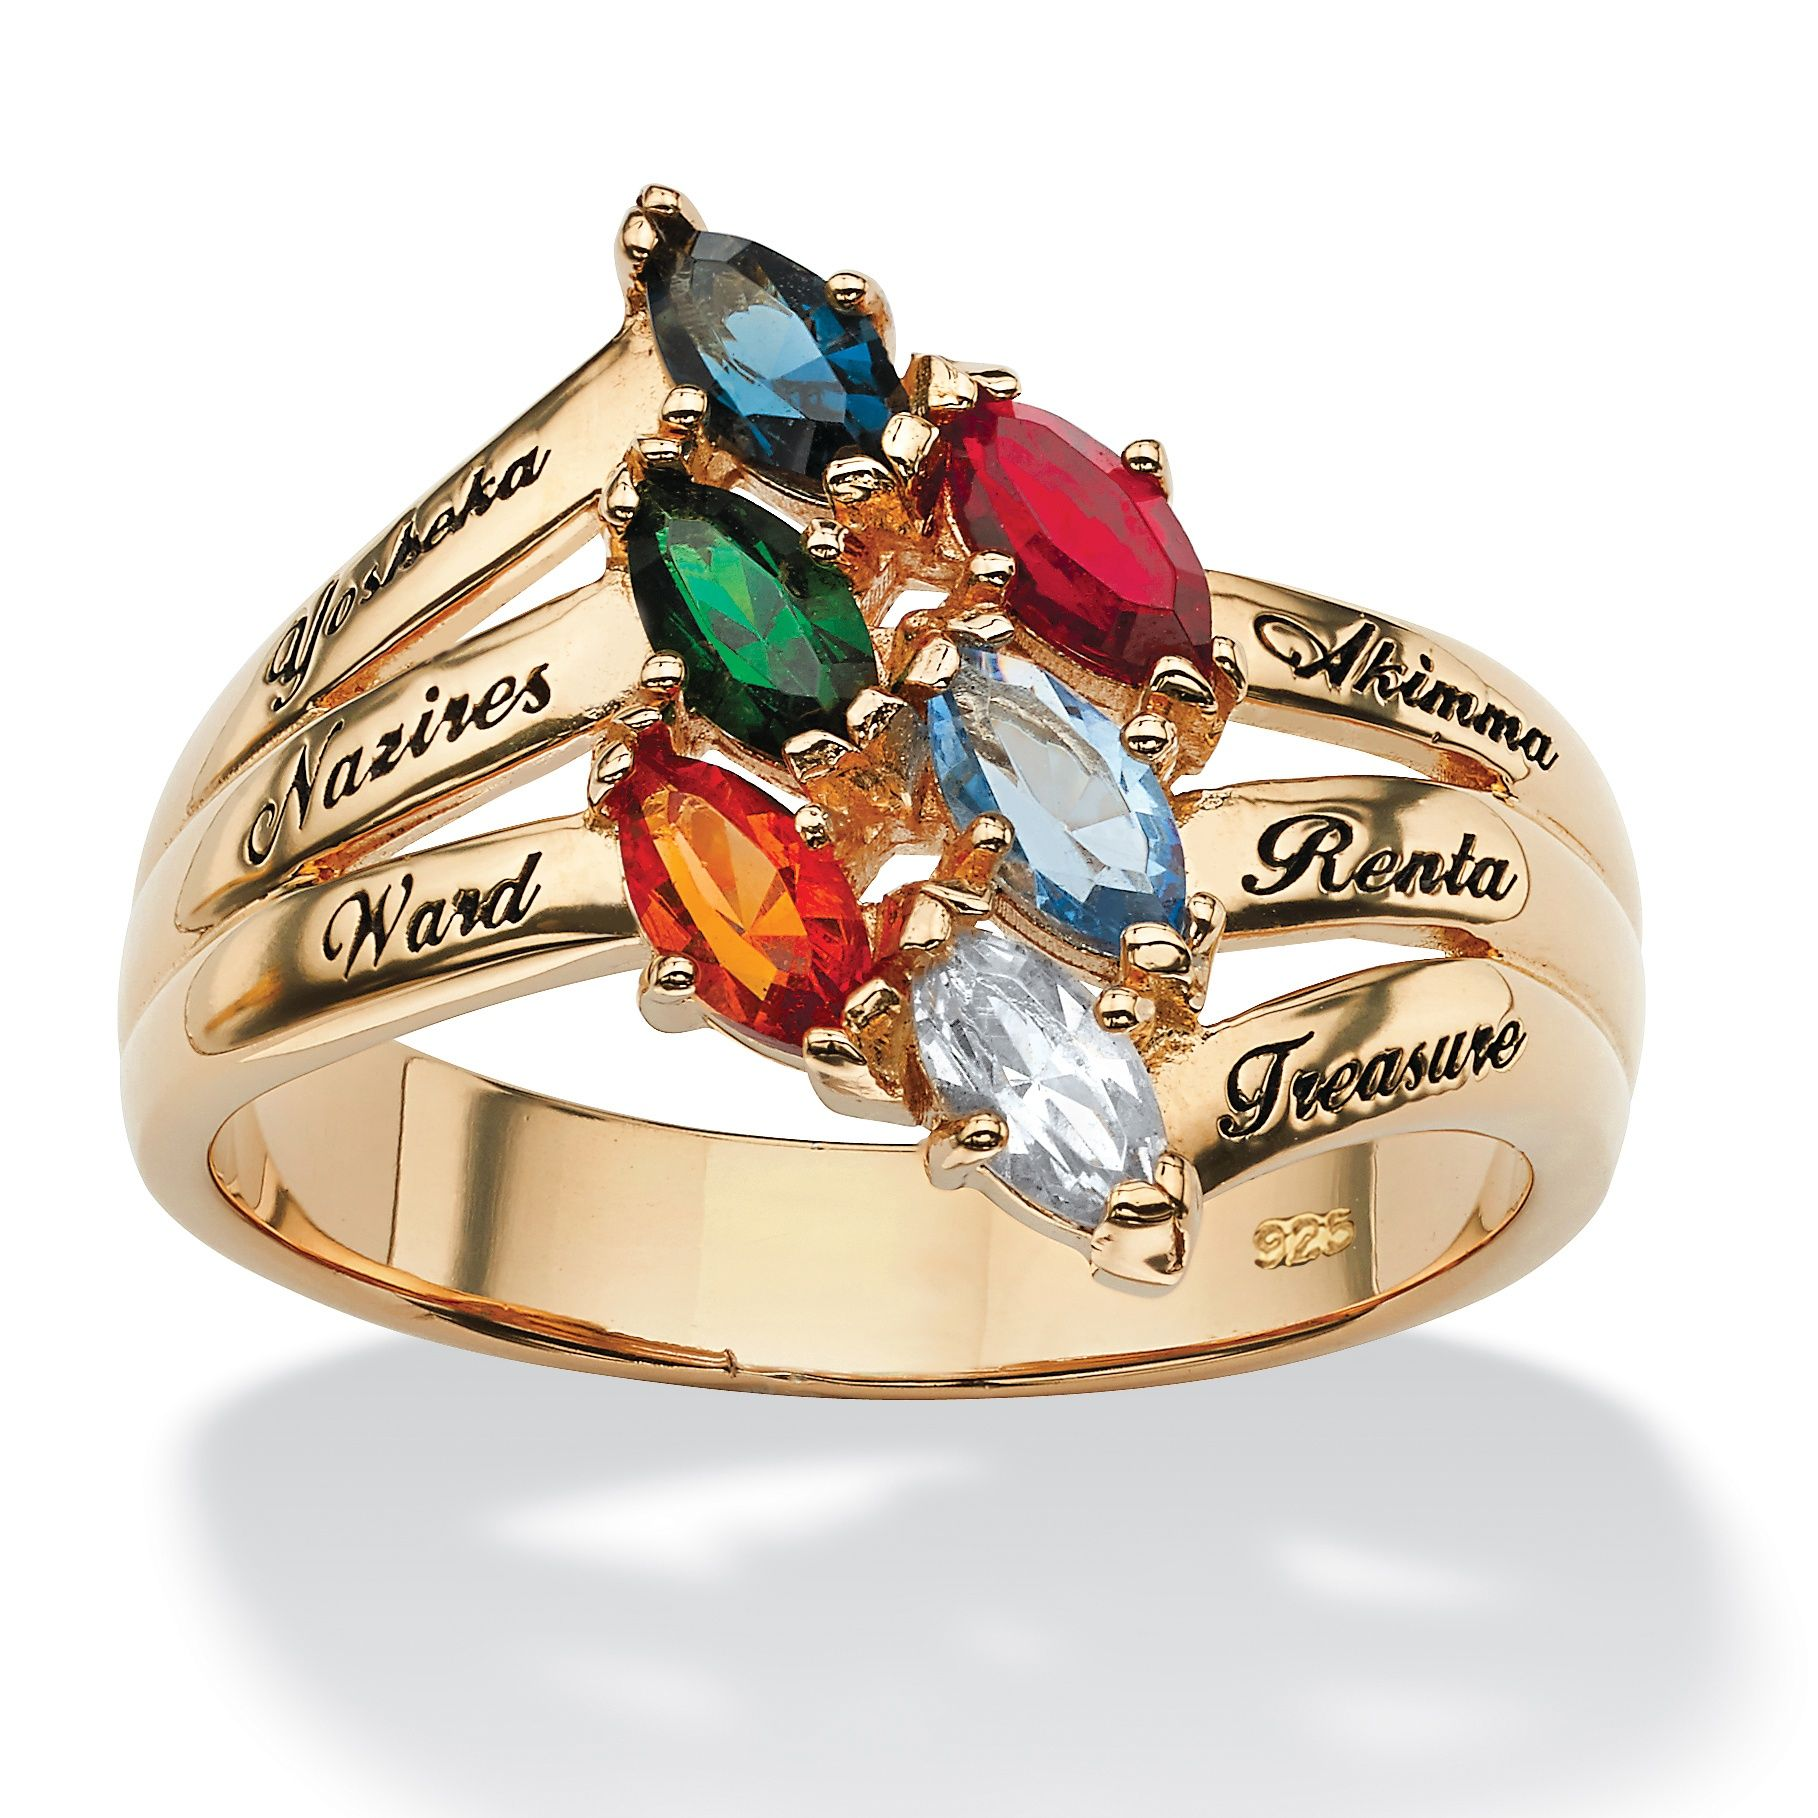 15+ Is palm beach jewelry real information